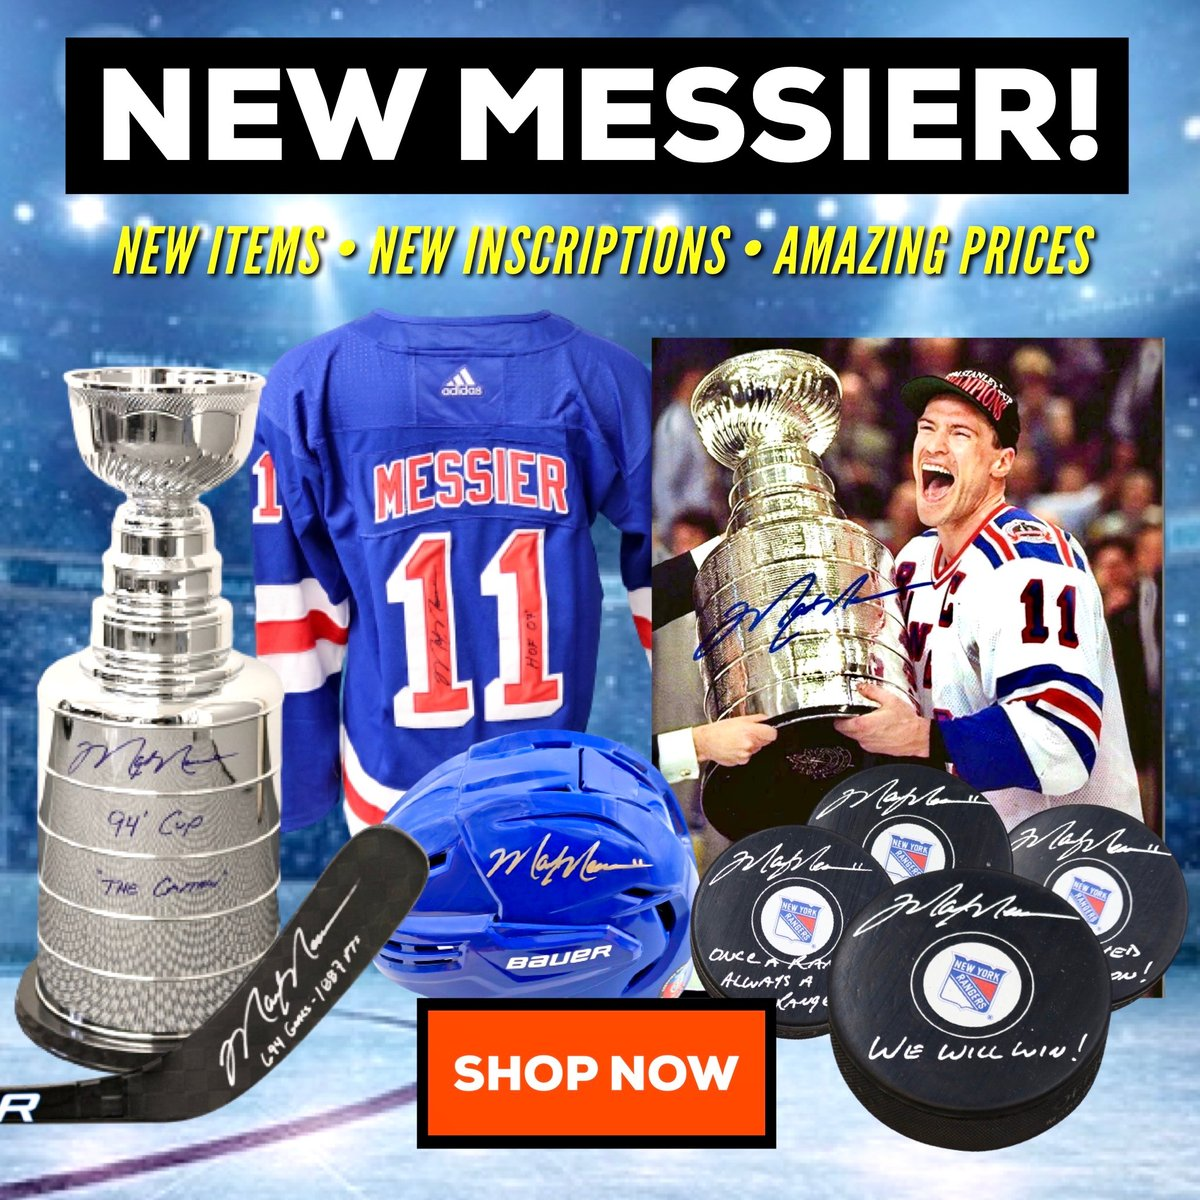 New MESSIER GEAR!!!   Come check out some EXCLUSIVE product with #Rangers and #NHL legend Mark Messier  Only @ CX  #messier #rangers #hockey #halloffame https://t.co/gB4cK60Thz